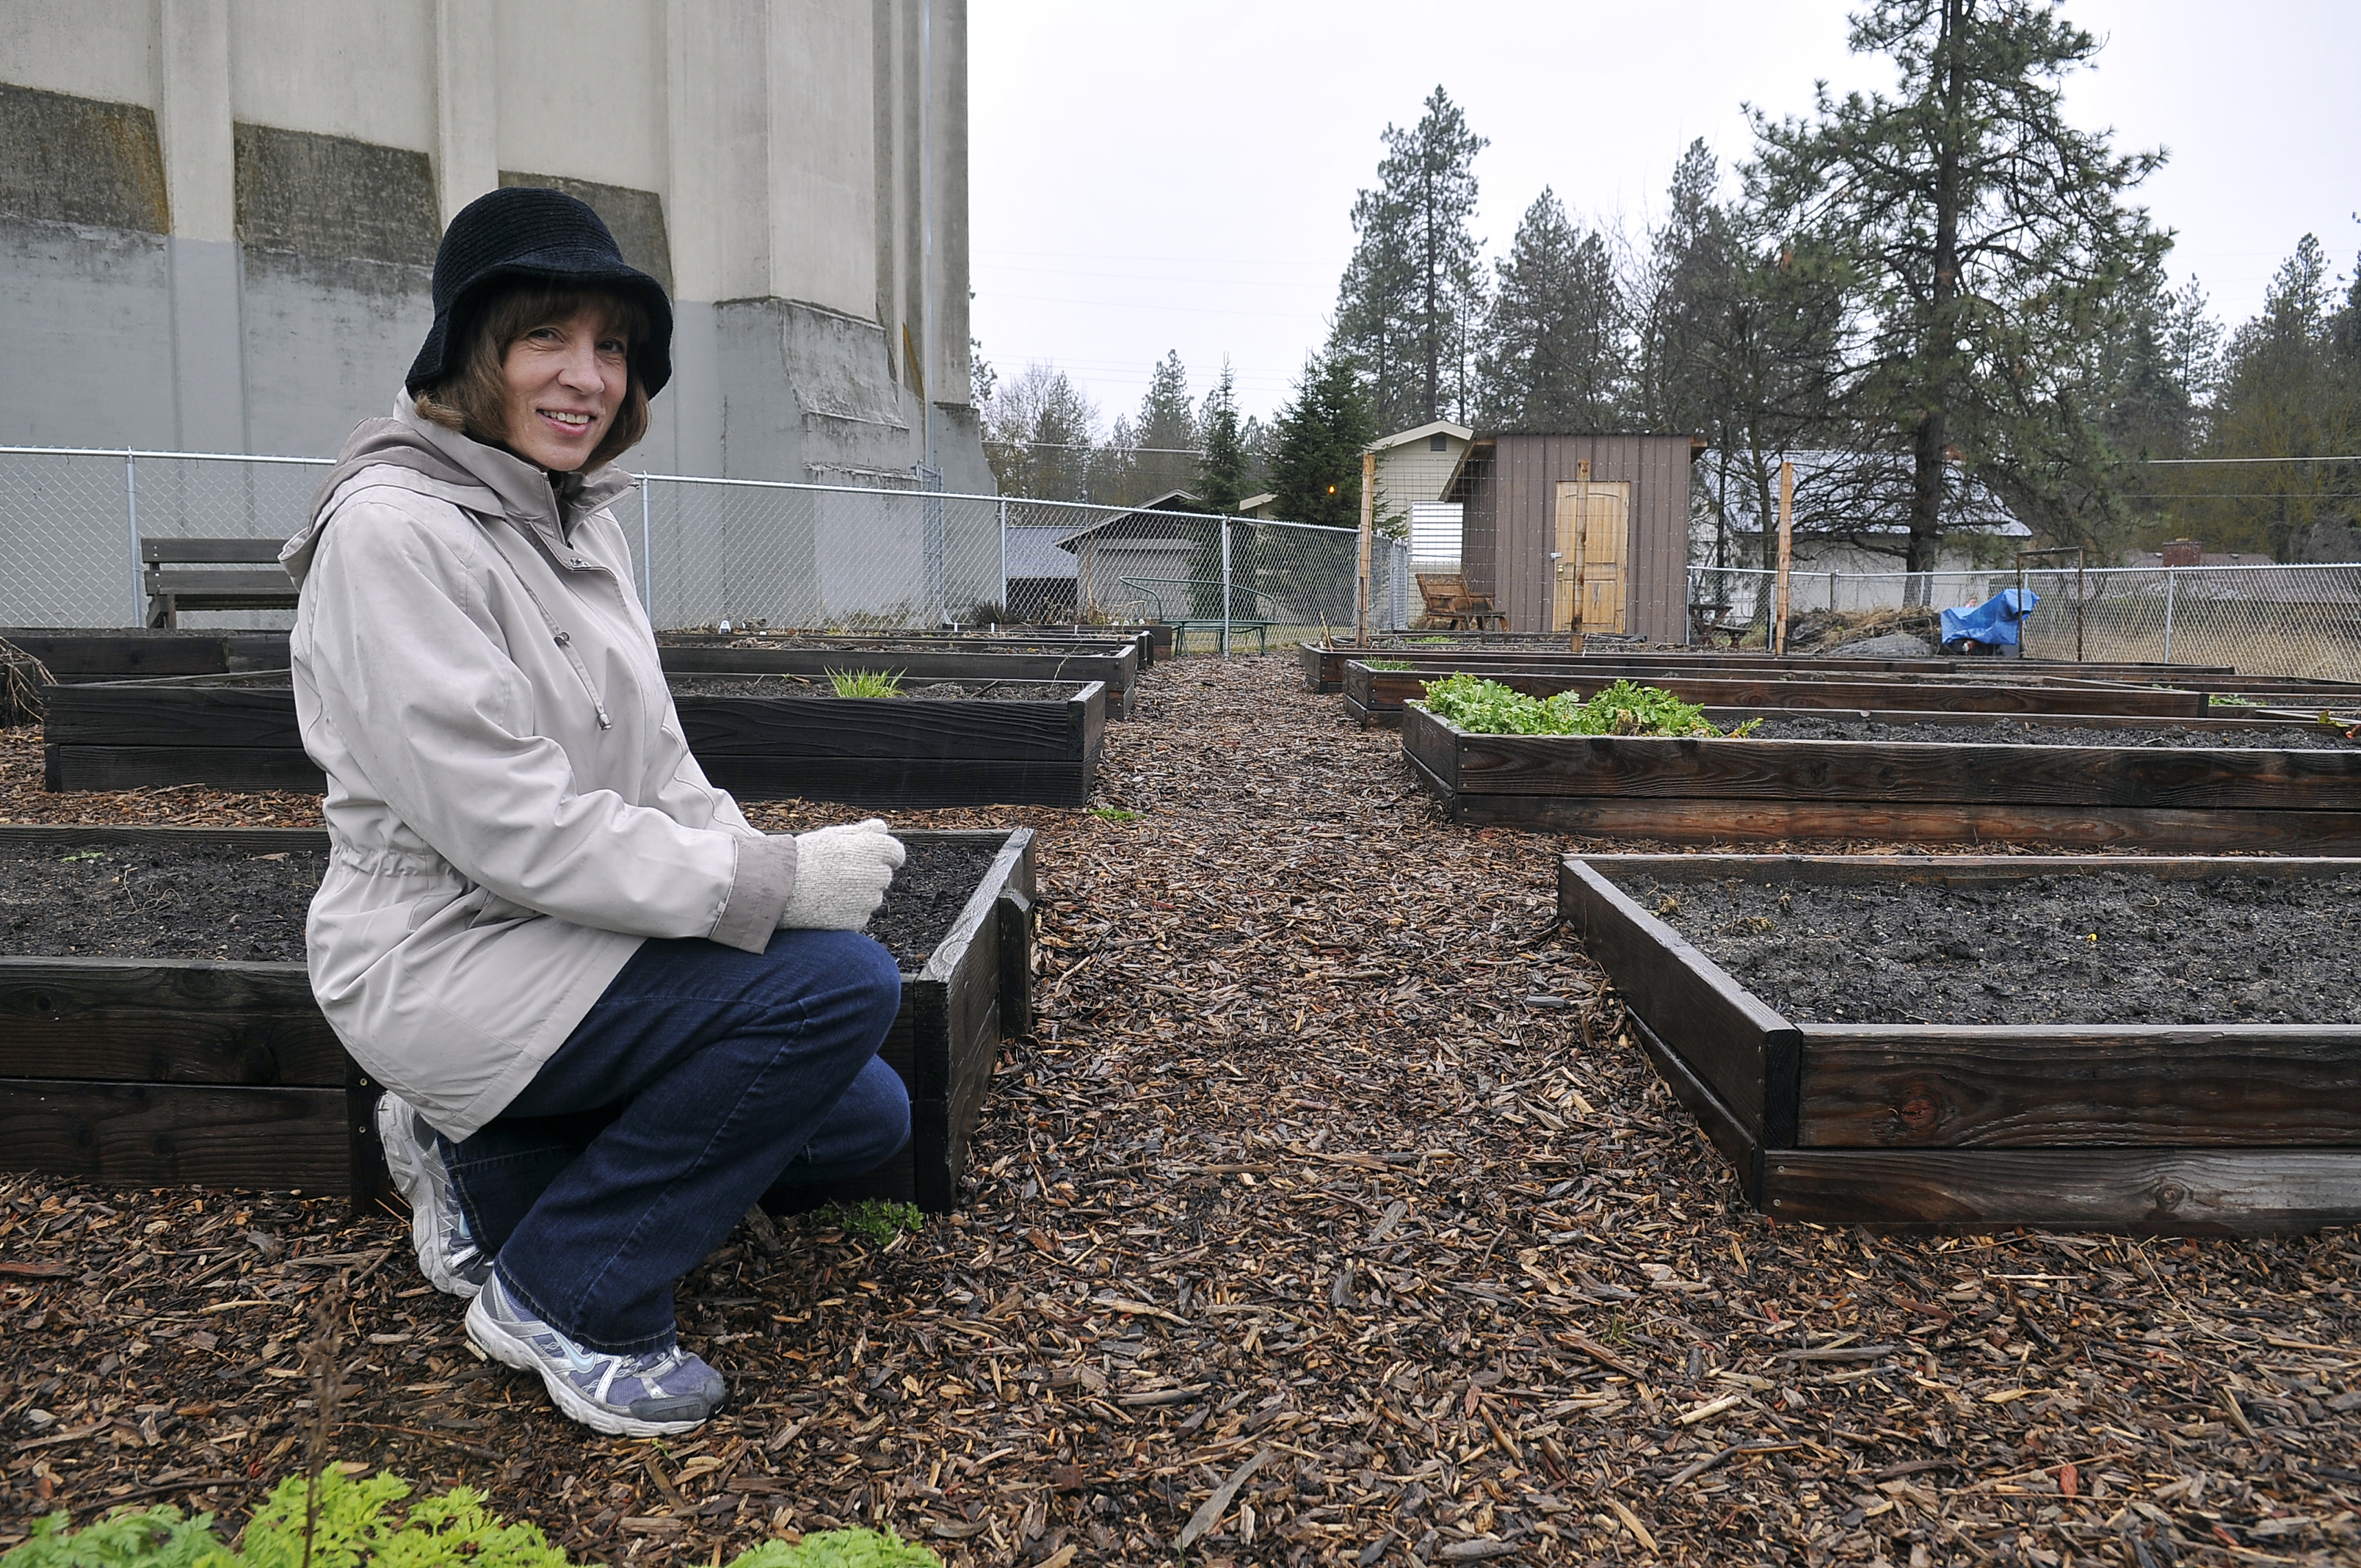 Lori Kinnear Stops For A Photo In The Community Garden On The West Side Of  Sacajawea